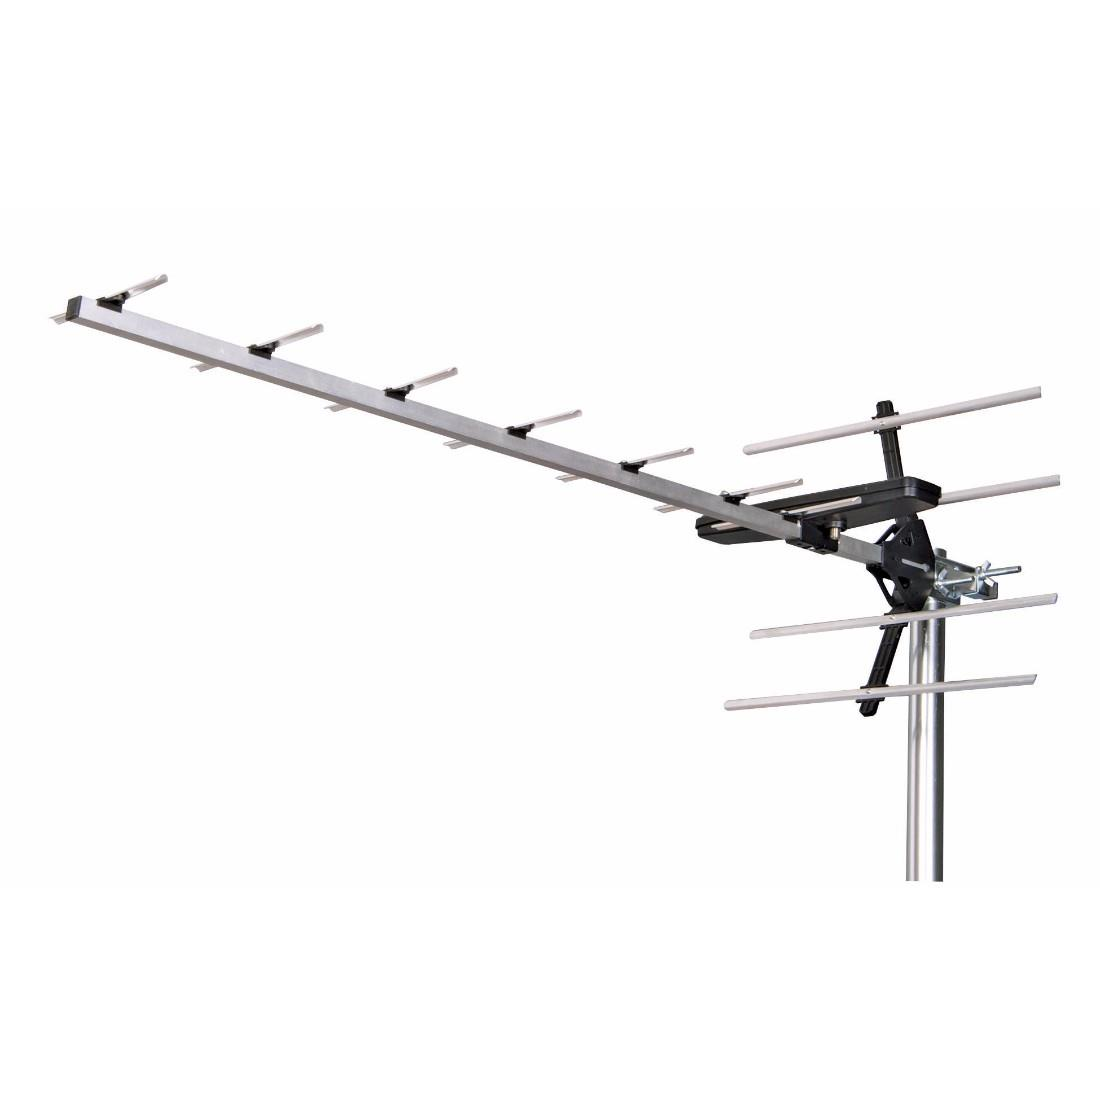 Labgear Labgt12 High Gain Tv Aerial Tv Signals In Medium